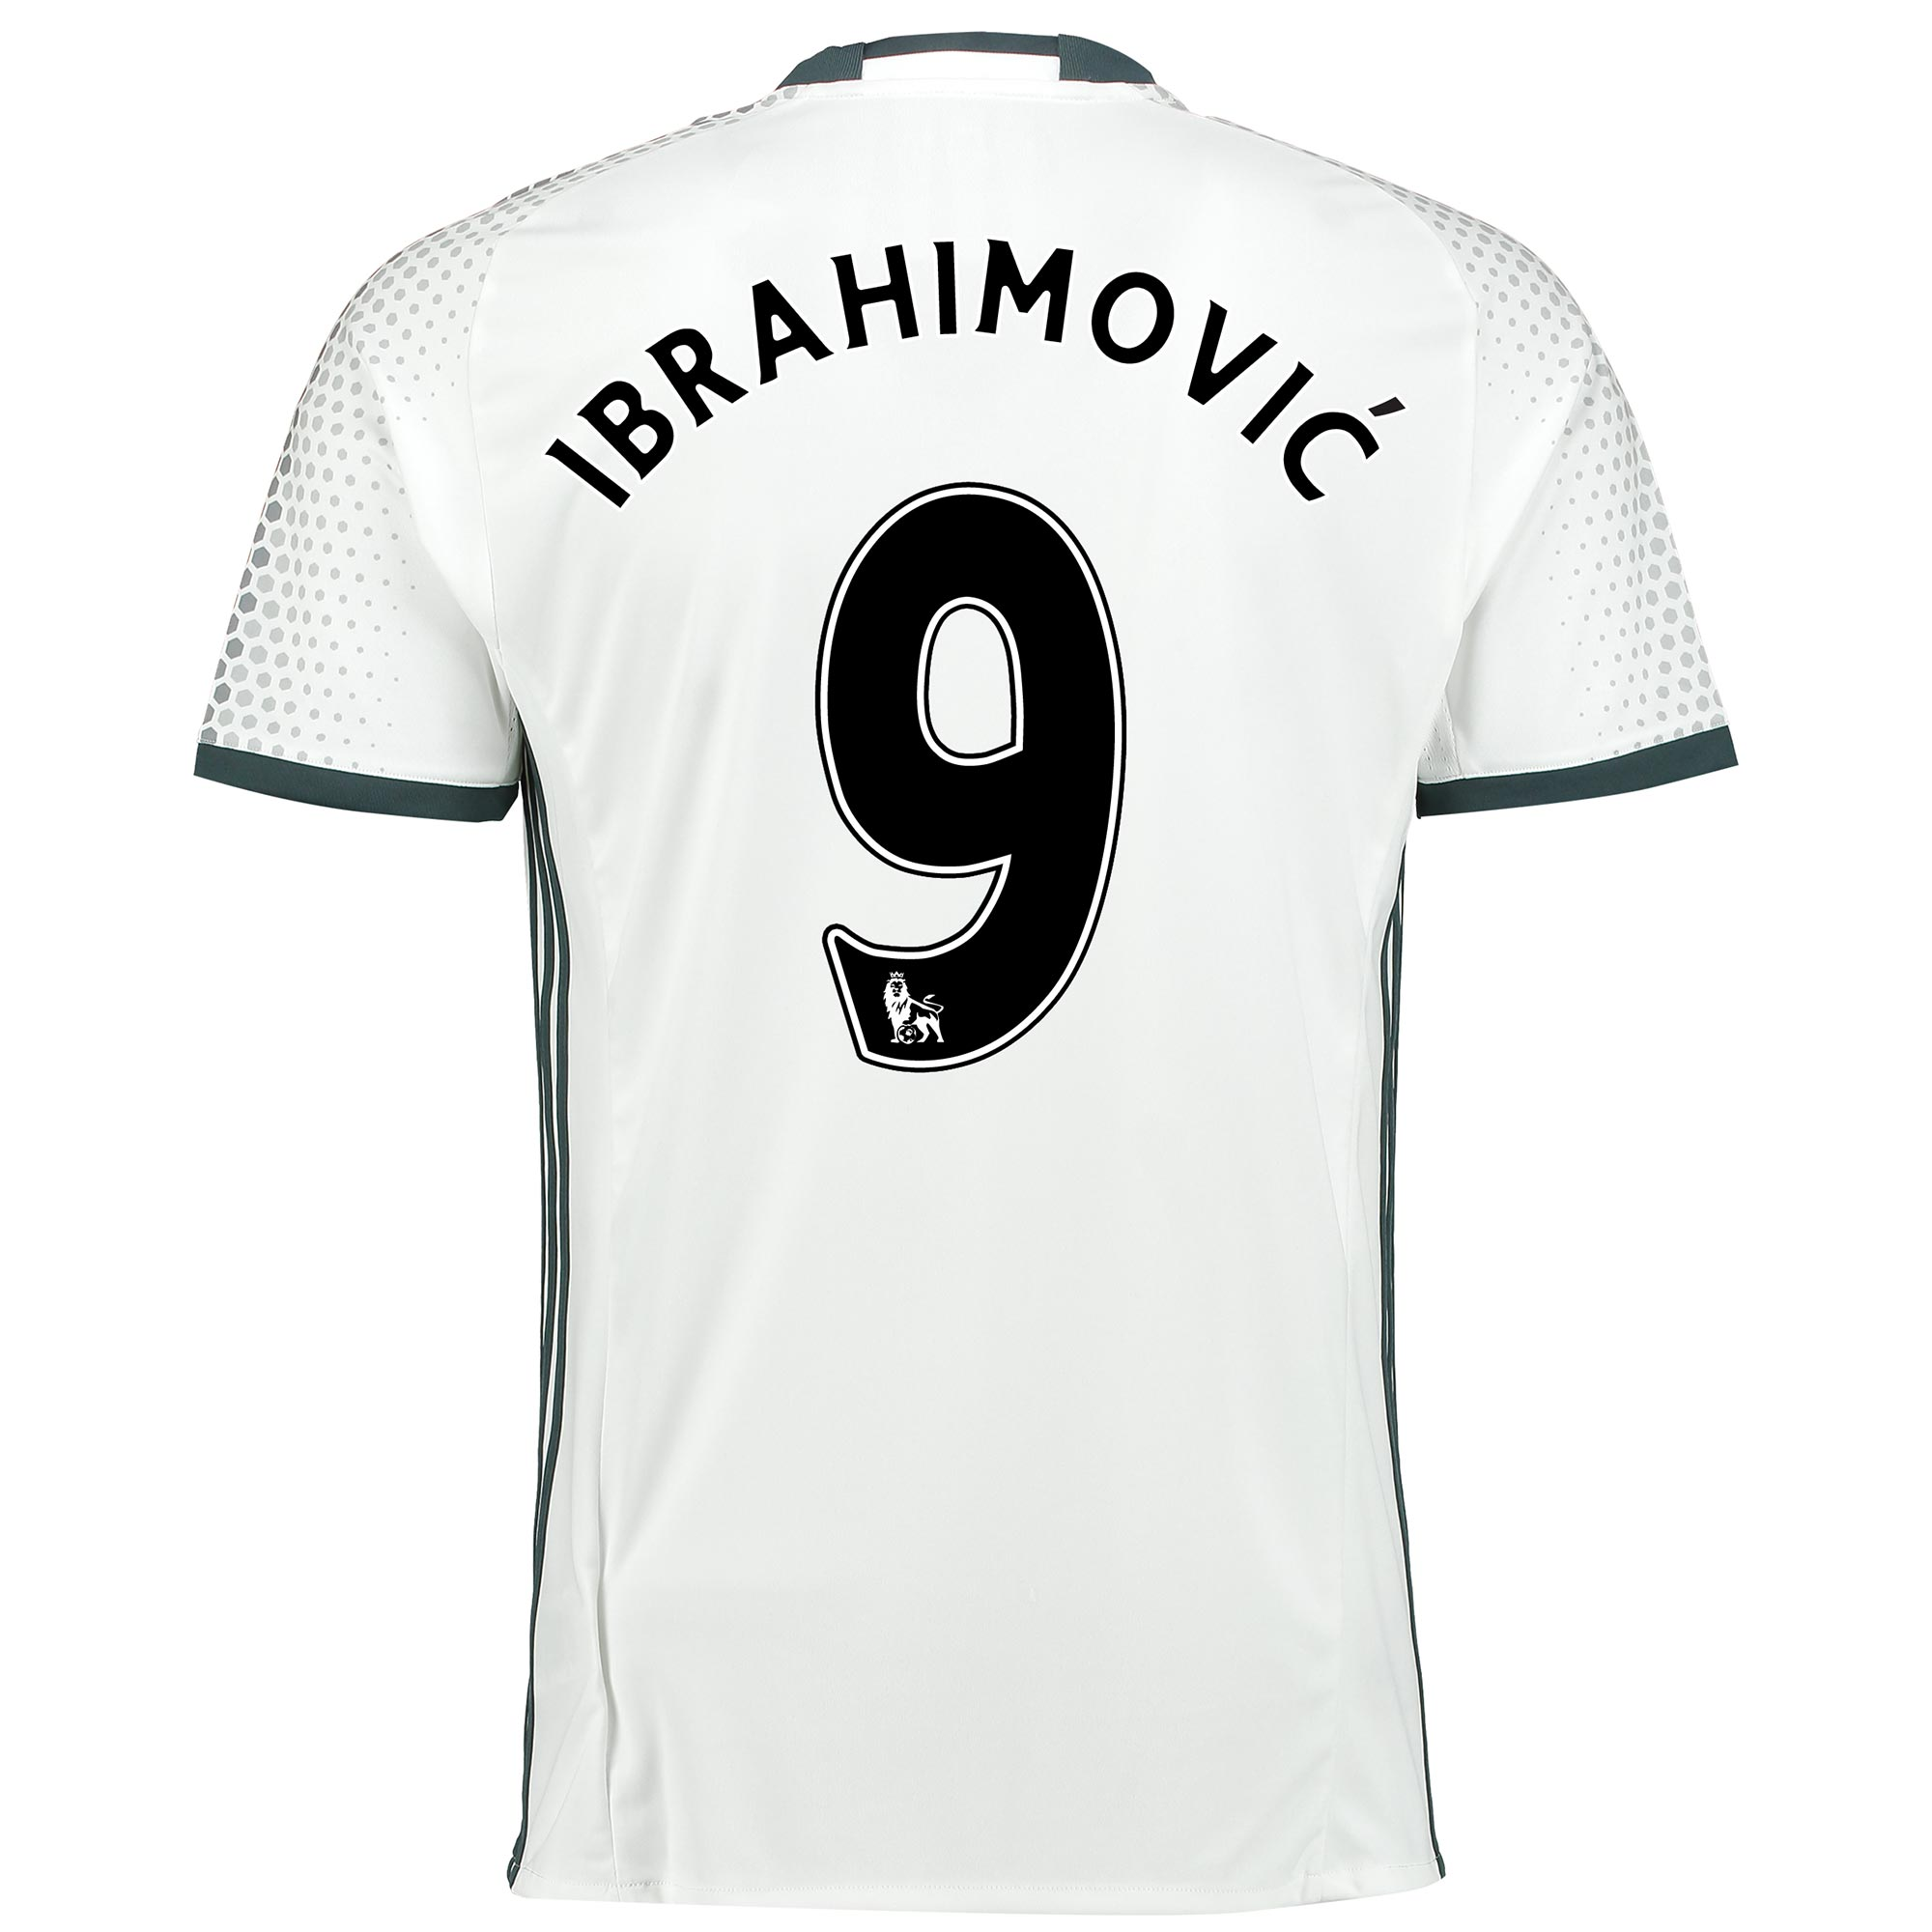 Troisième Maillot Manchester United 2016-17 - Ibrahimovic 9